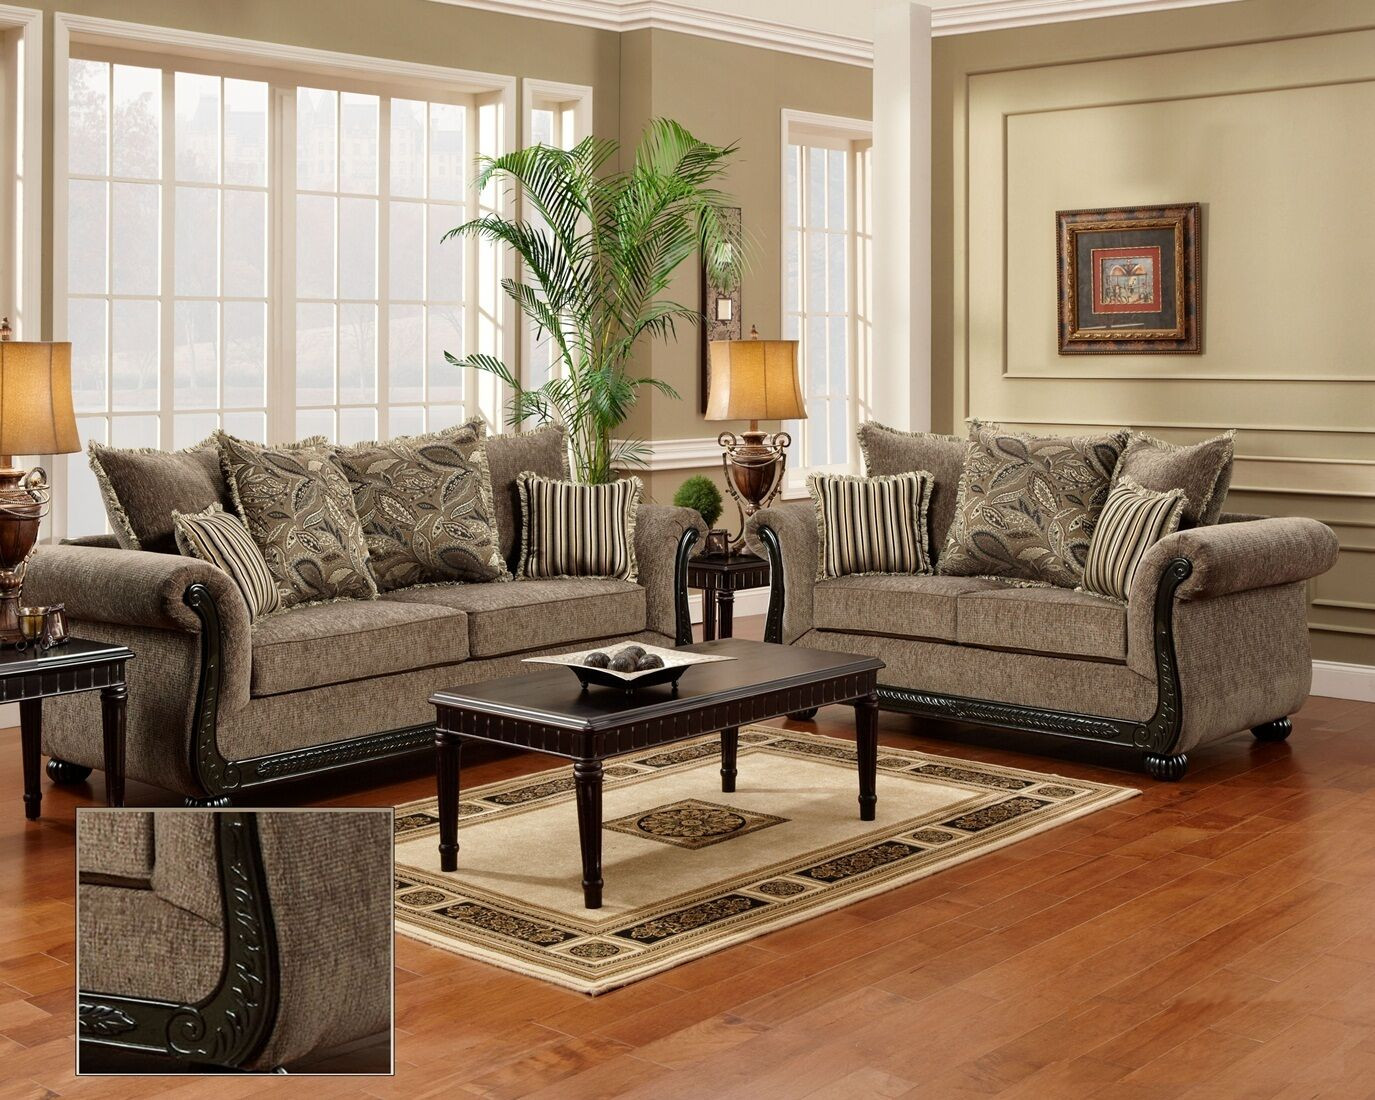 Best ideas about Living Room Couches . Save or Pin Dream Java Chenille Sofa & Love Seat Living Room Furniture Now.